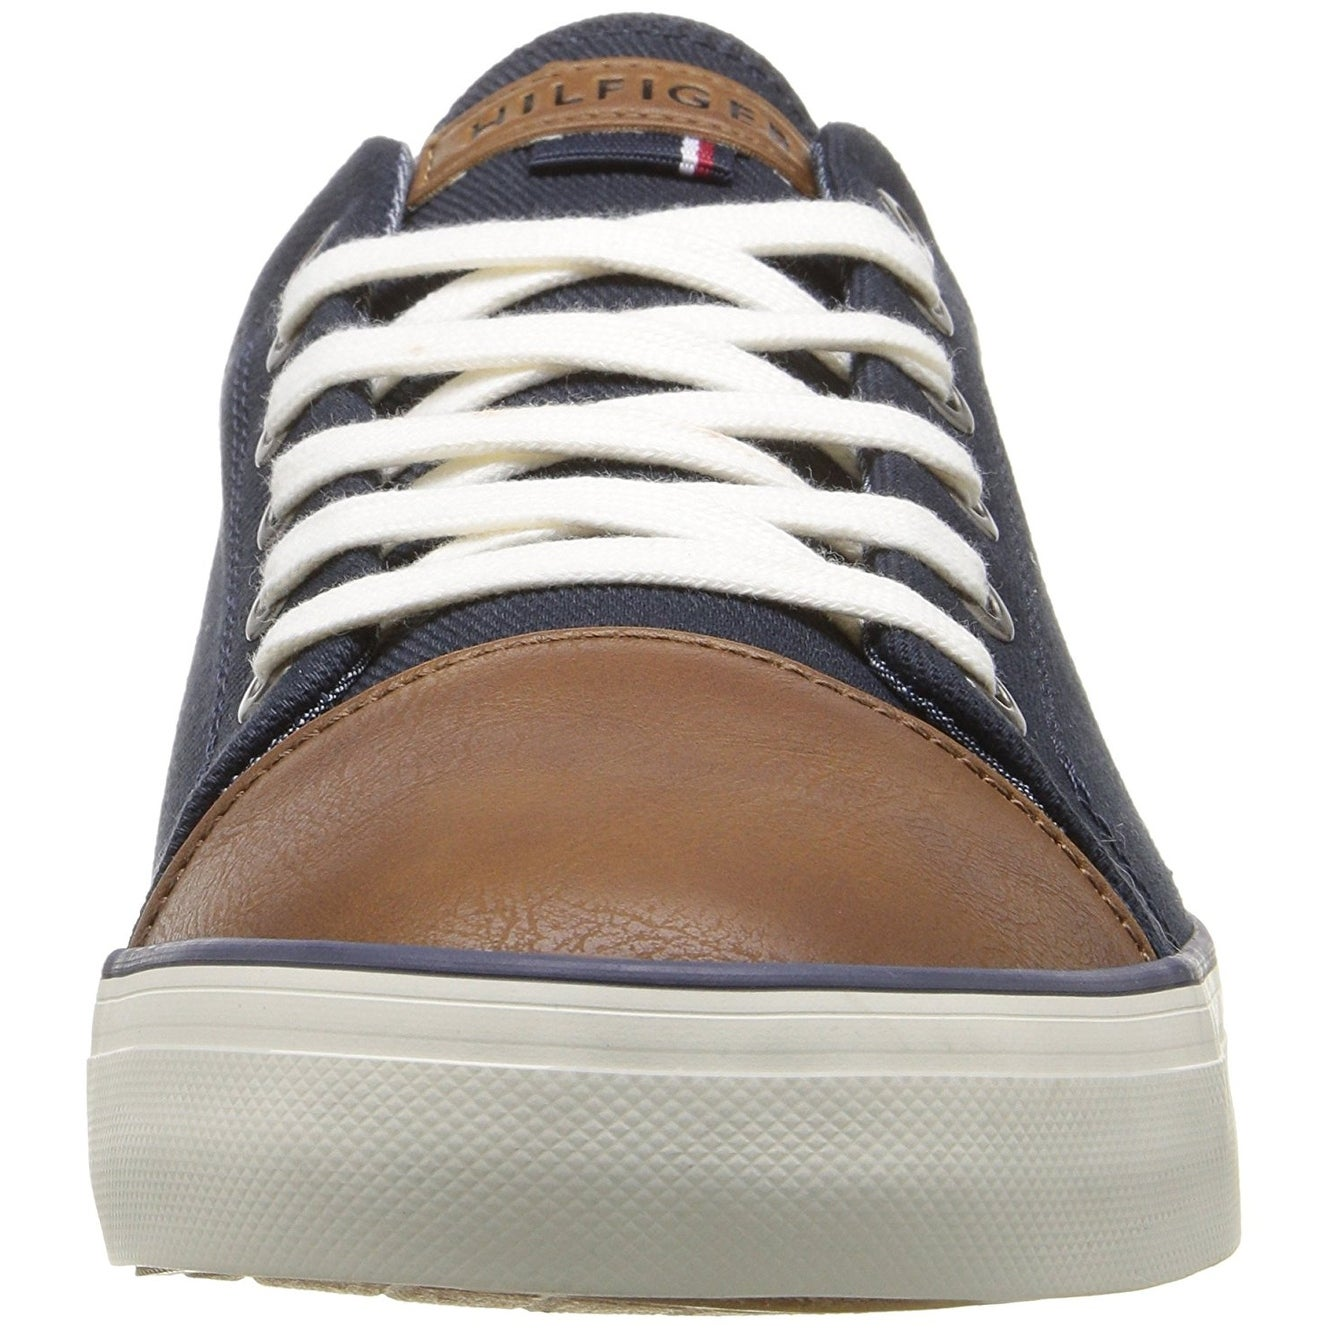 a036dd8f195174 Shop Tommy Hilfiger Mens Parma Low Top Lace Up Fashion Sneakers - Free  Shipping On Orders Over  45 - Overstock - 19879632